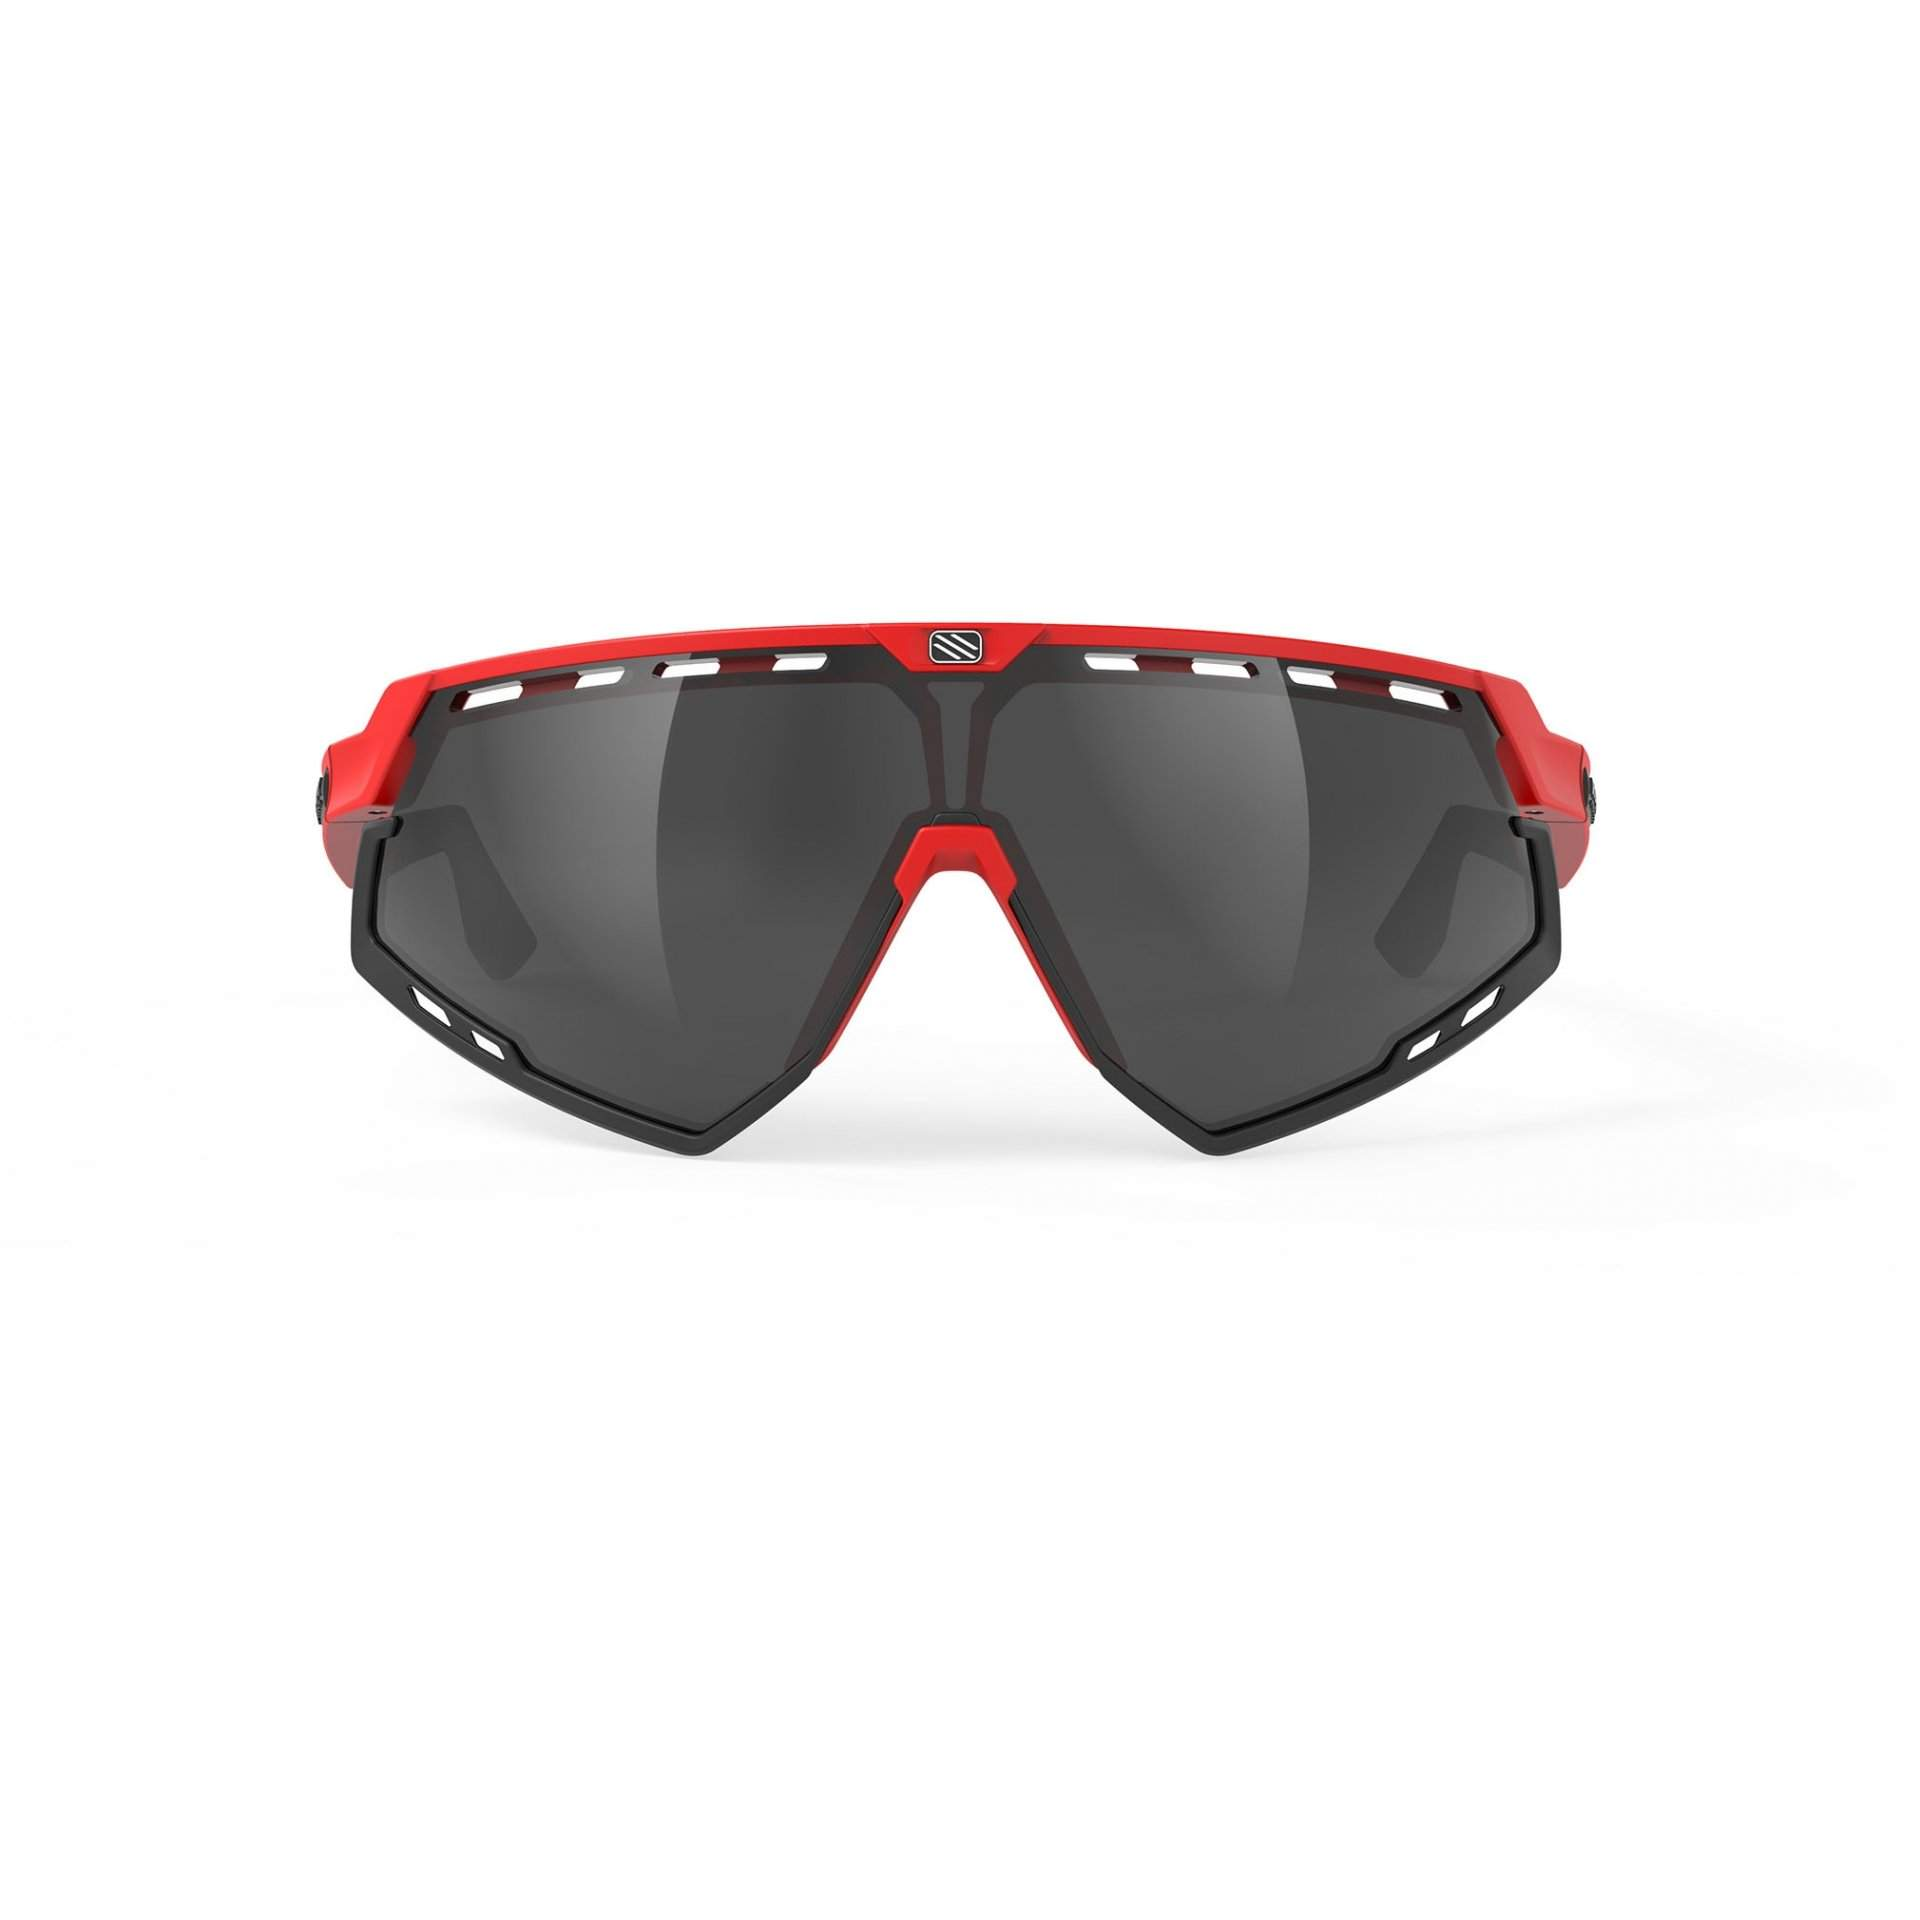 OKULARY RUDY PROJECT DEFENDER FIRE RED MATTE SMOKE BLACK 2